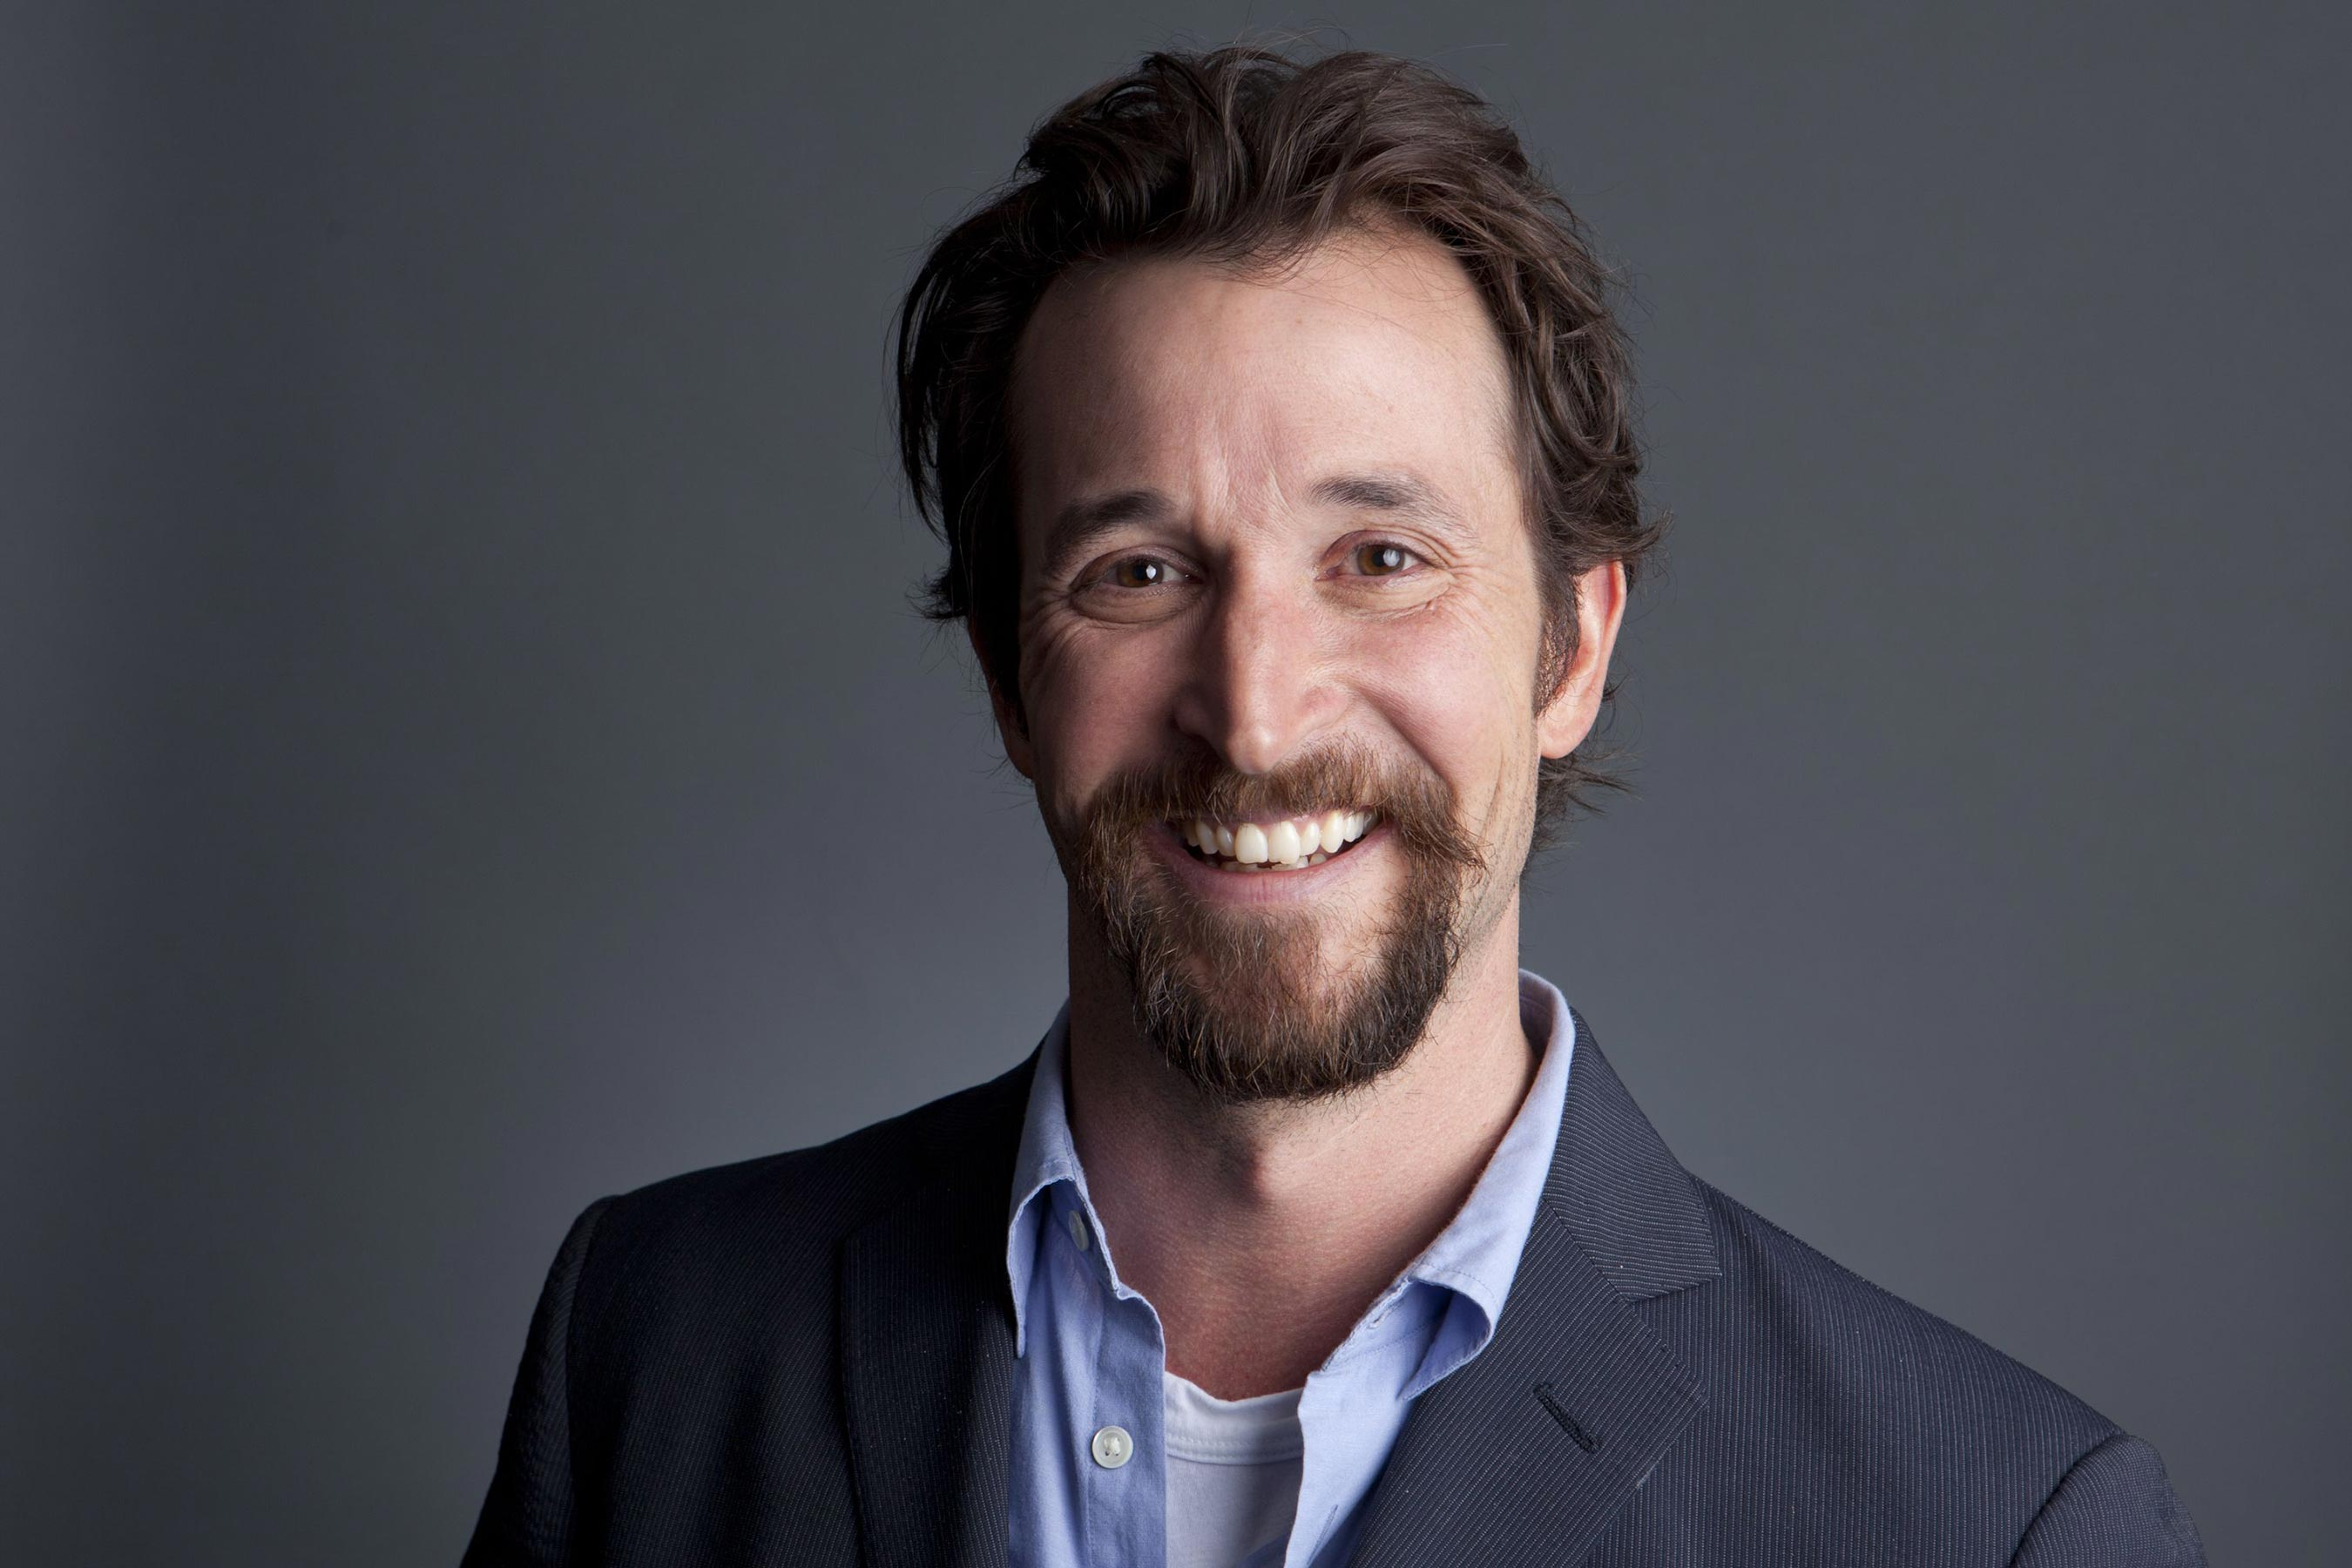 Noah Wyle to star in CBS drama Red Line from Ava DuVernay